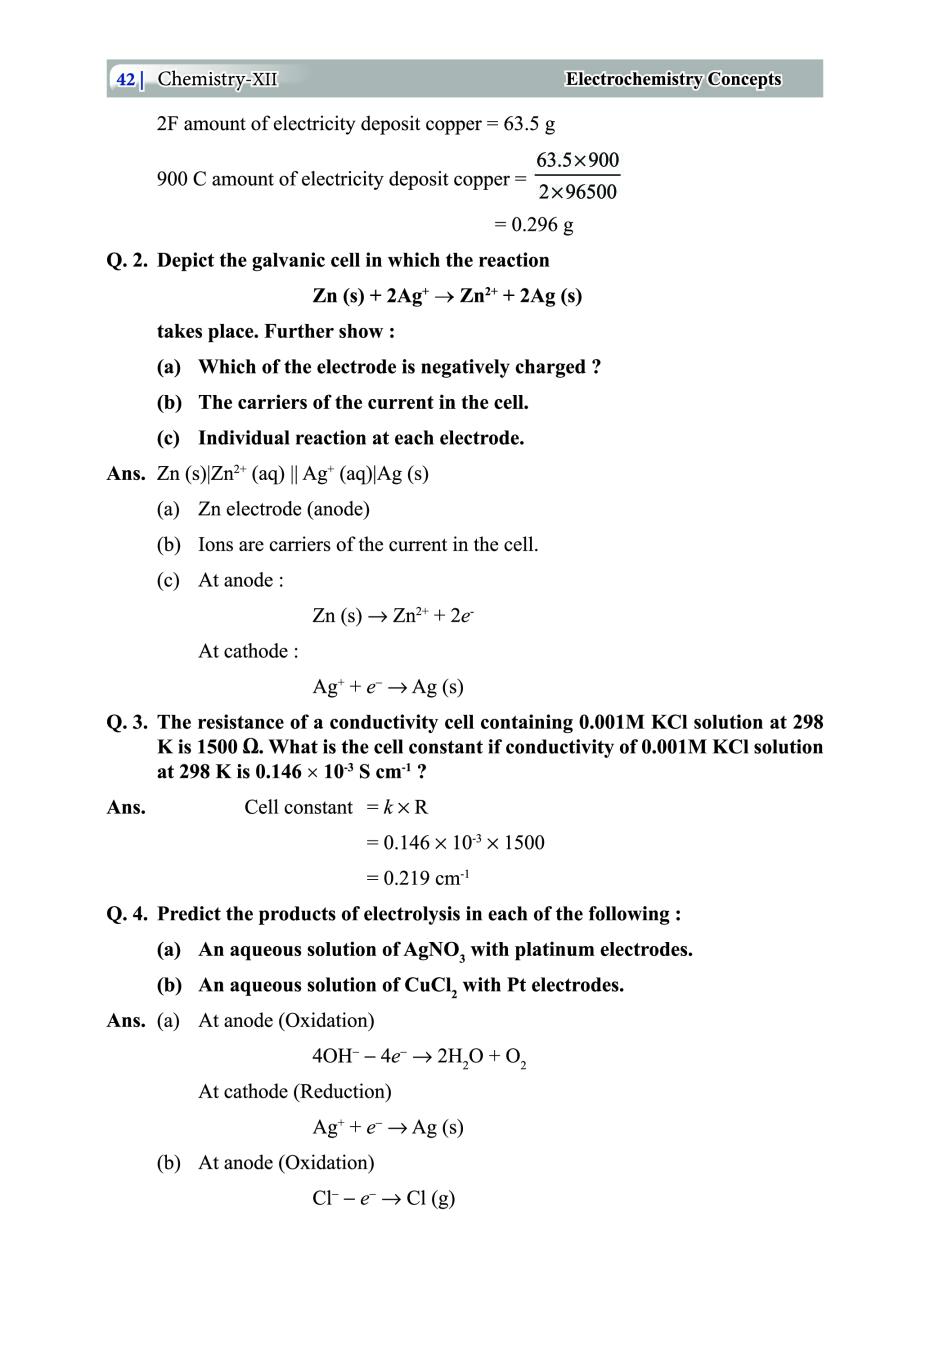 Class 12 Chemistry Notes for Electrochemistry Concepts